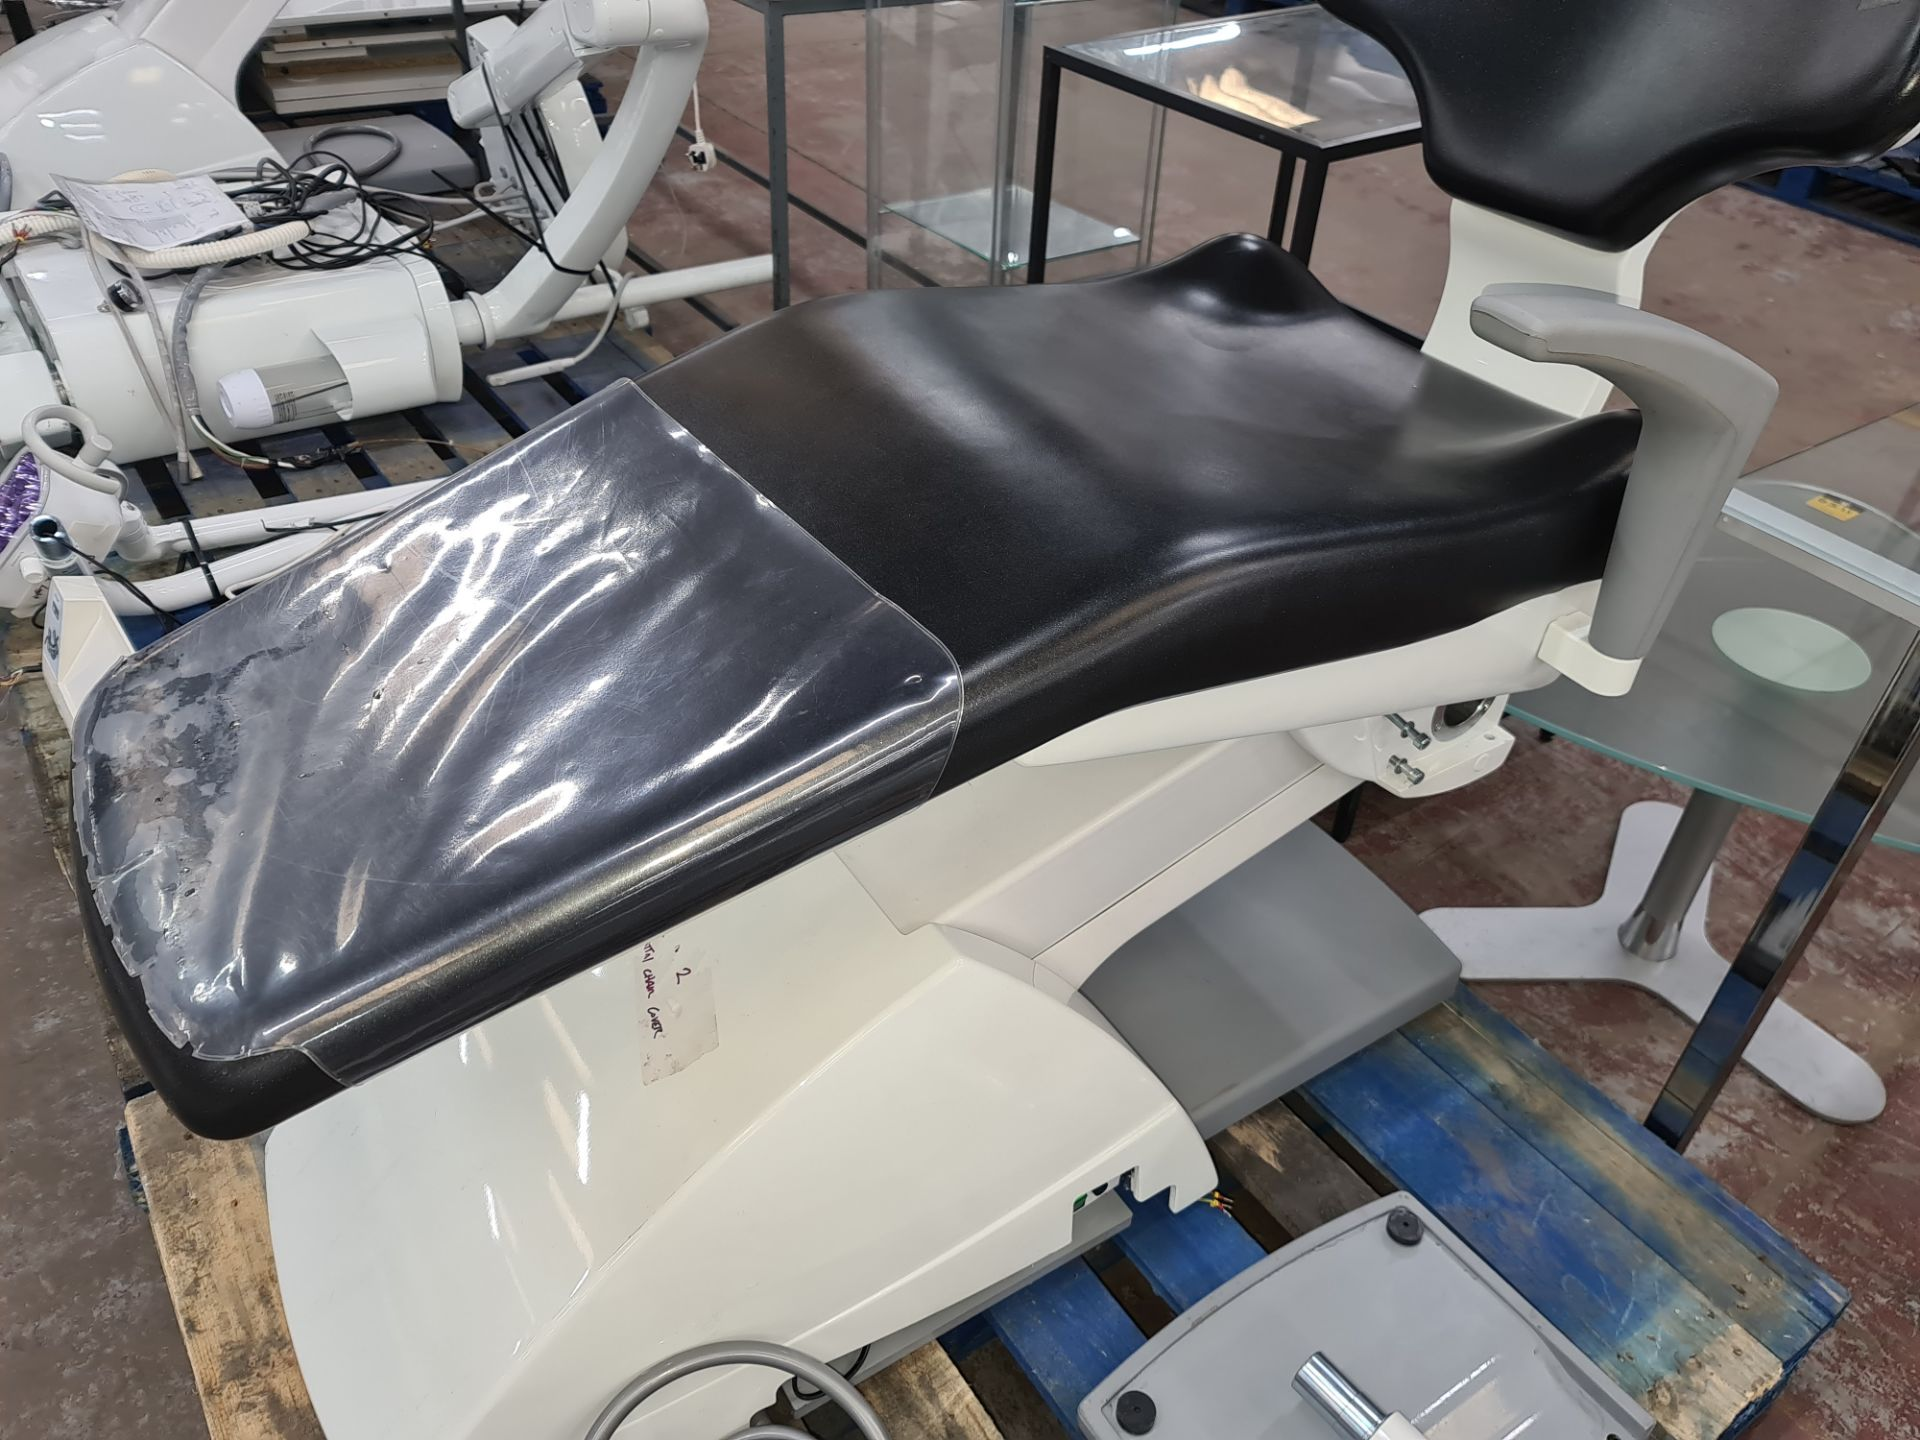 Ancar model SD-175 electro pneumatic dental chair & treatment centre unit with hanging hoses system - Image 4 of 24